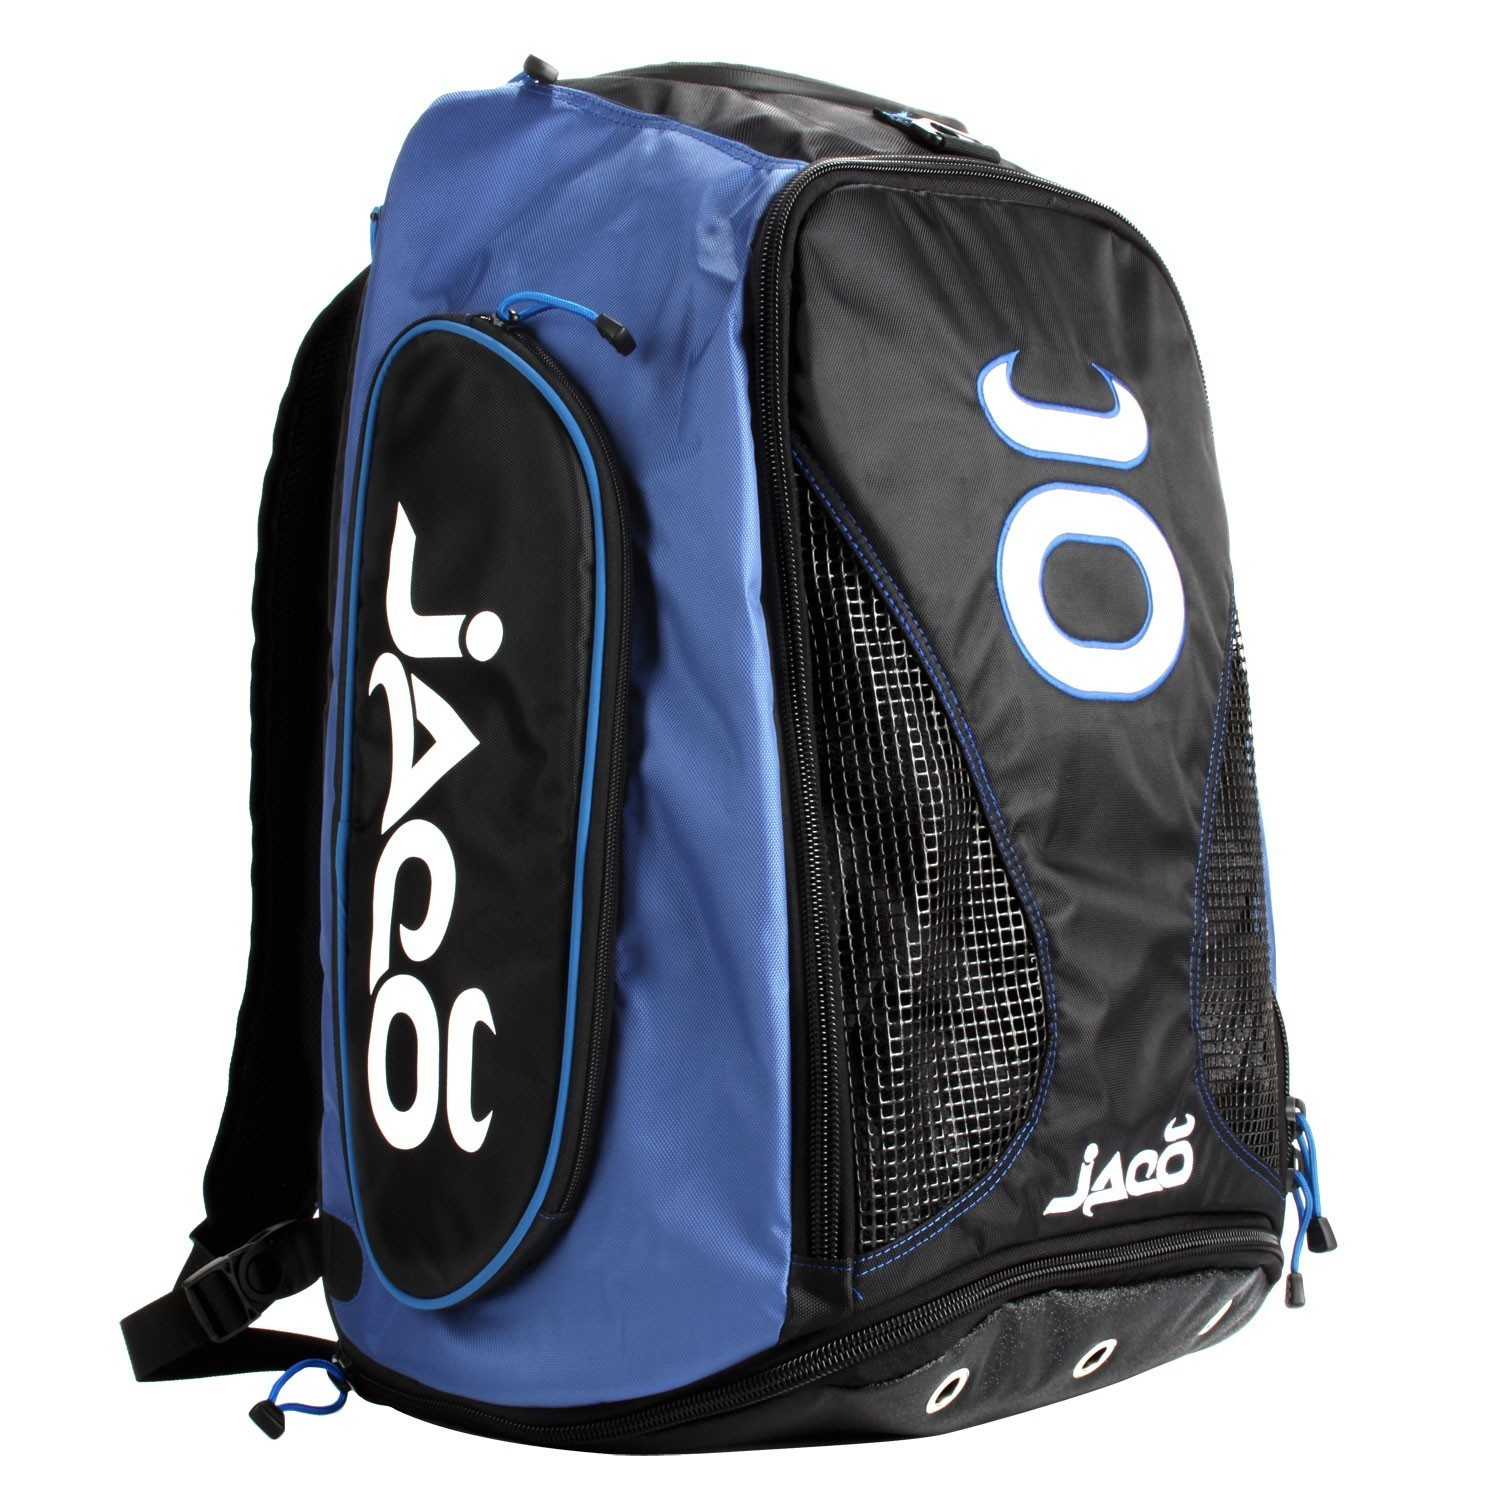 Vented Convertible Equipment Bag 2.0 (Black/Cobalt Blue)